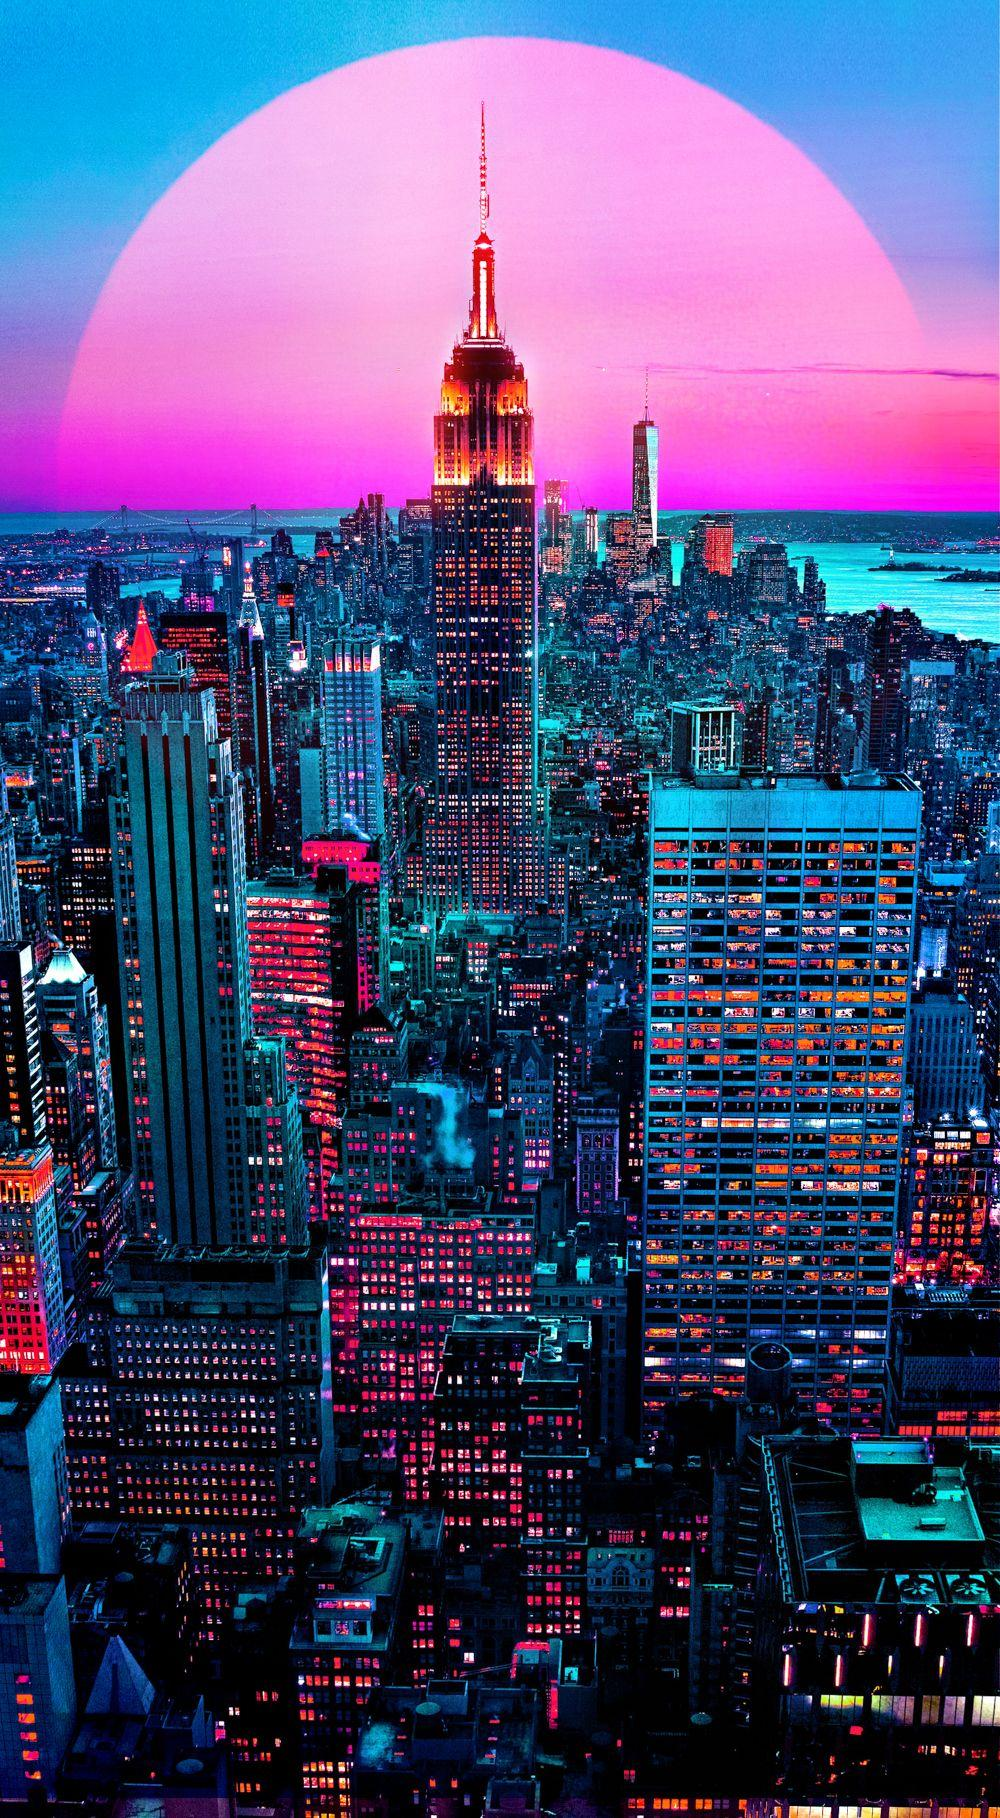 HD Aesthetic Neon City Wallpapers - Wallpaper Cave